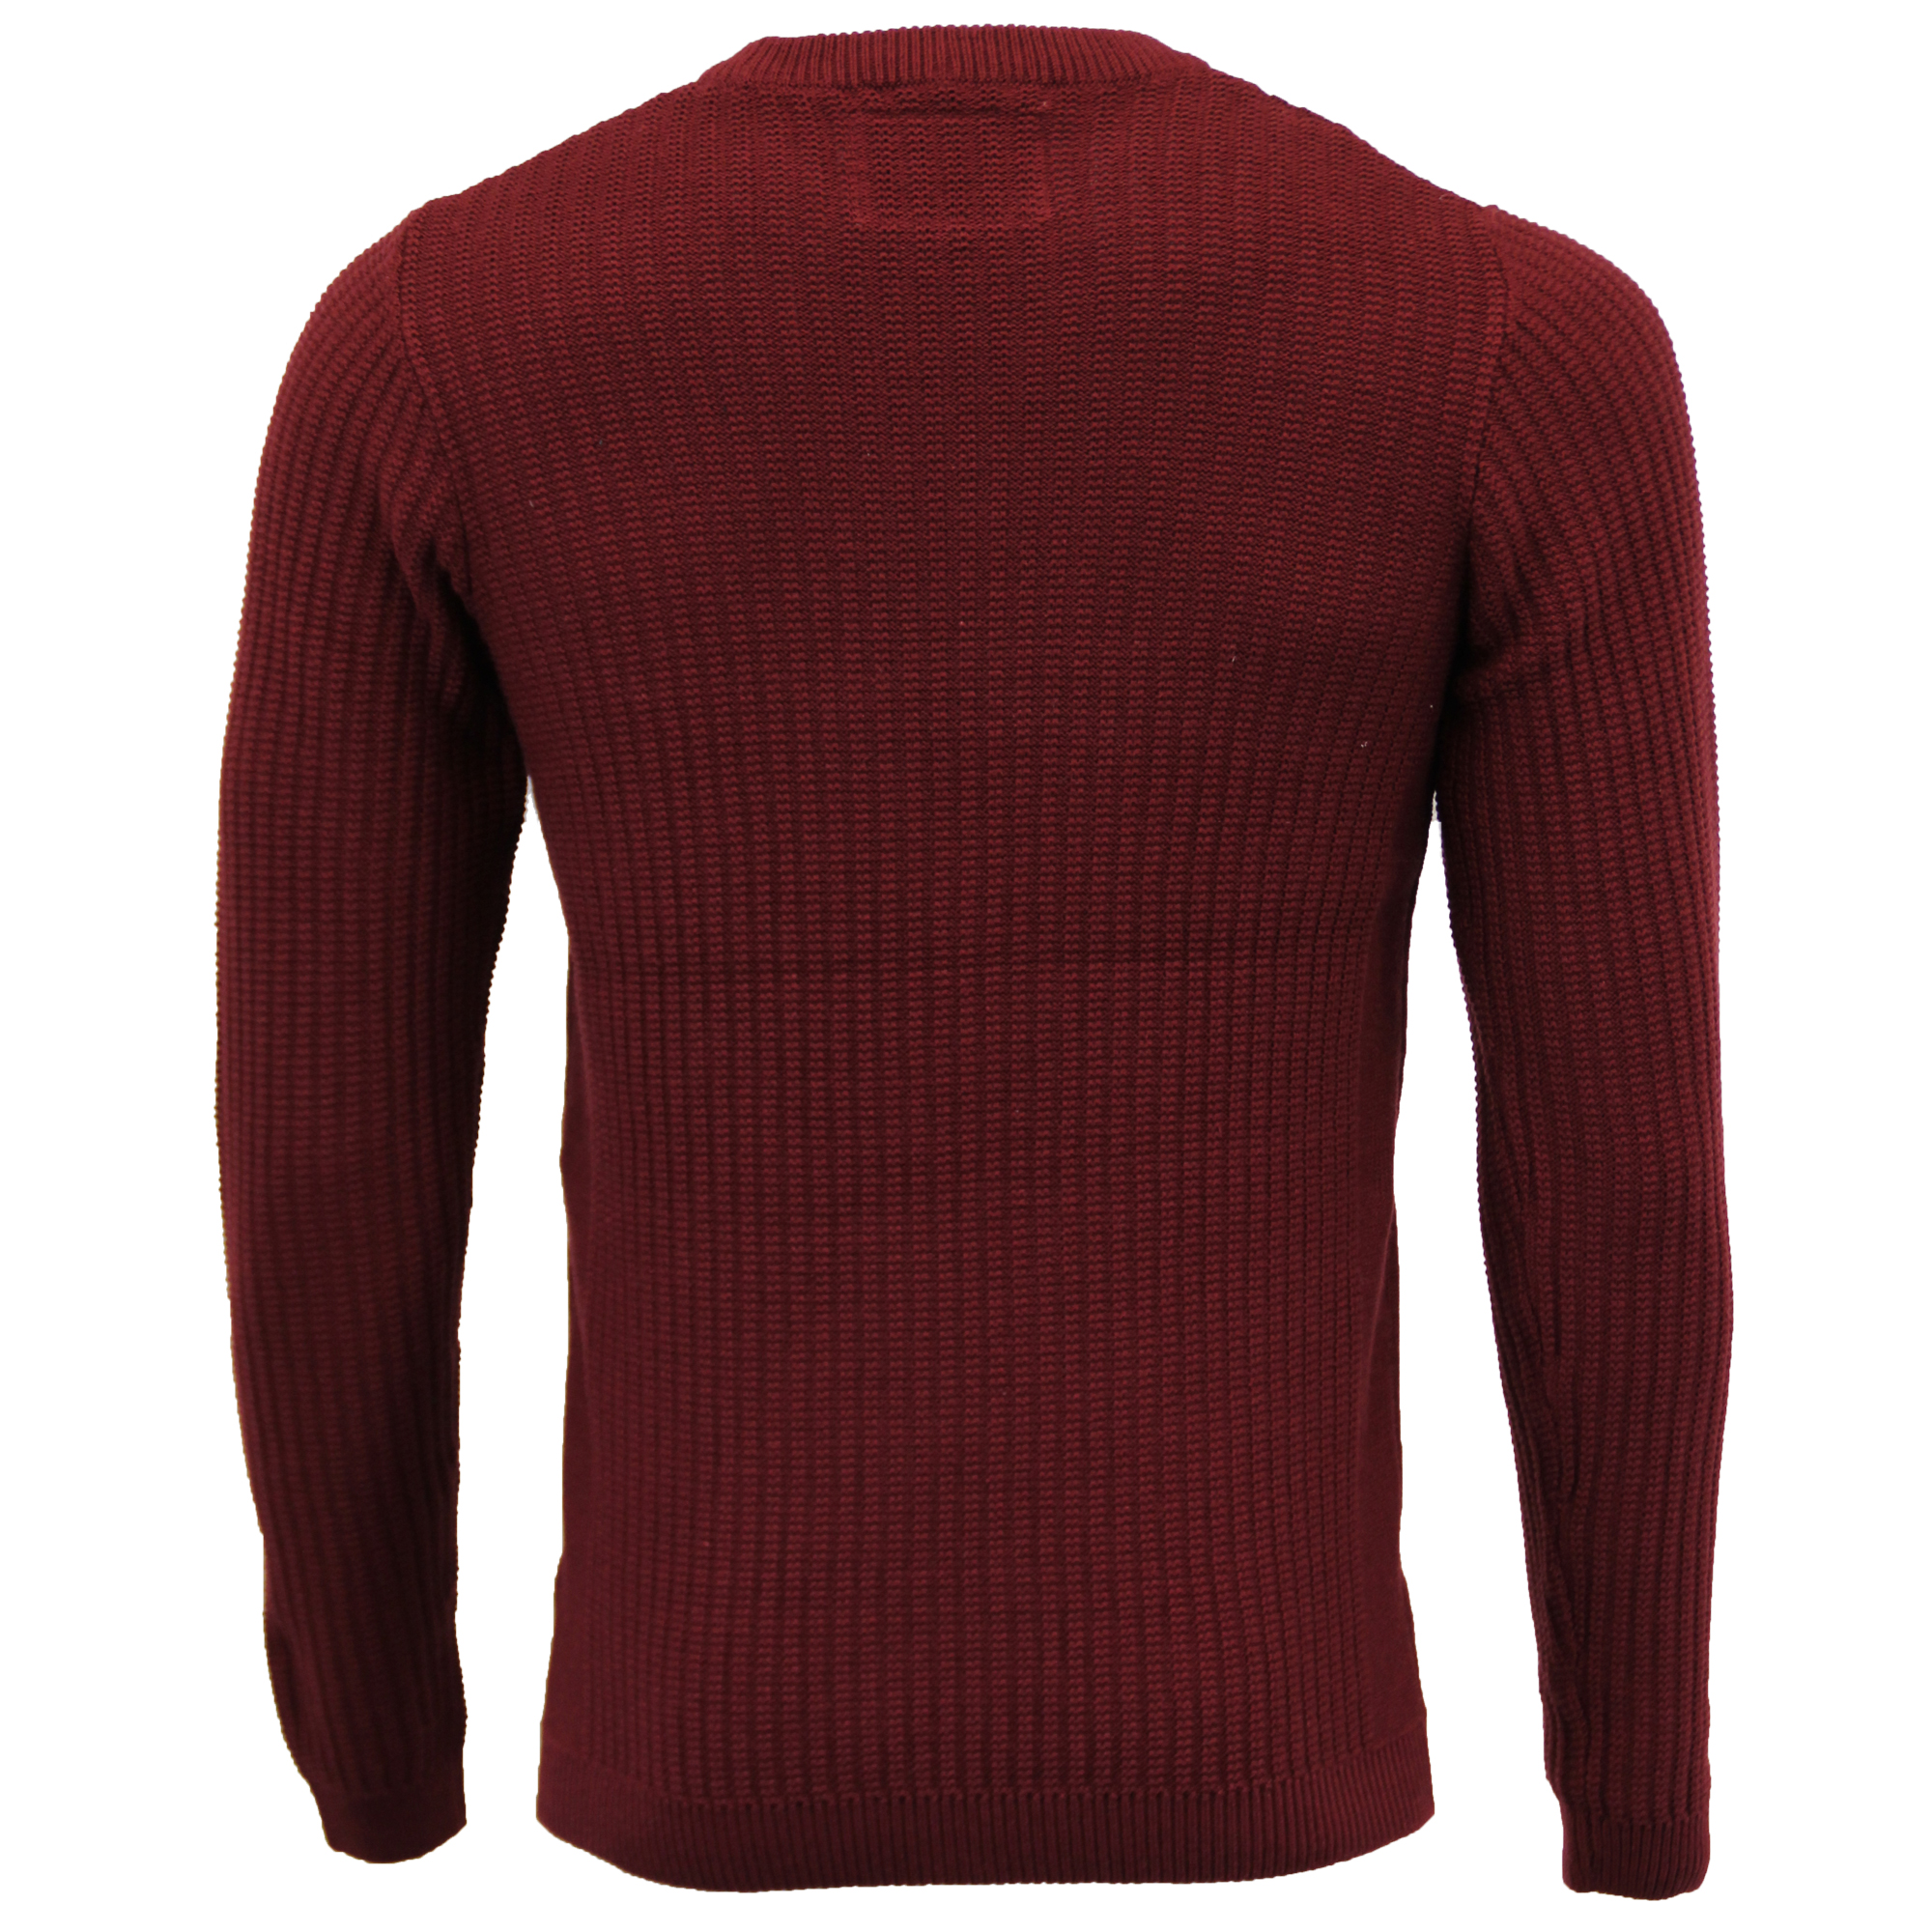 Mens-Knitted-Jumper-Tokyo-Laundry-Ribbed-Sweater-Pullover-Top-Crew-Neck-Winter thumbnail 8